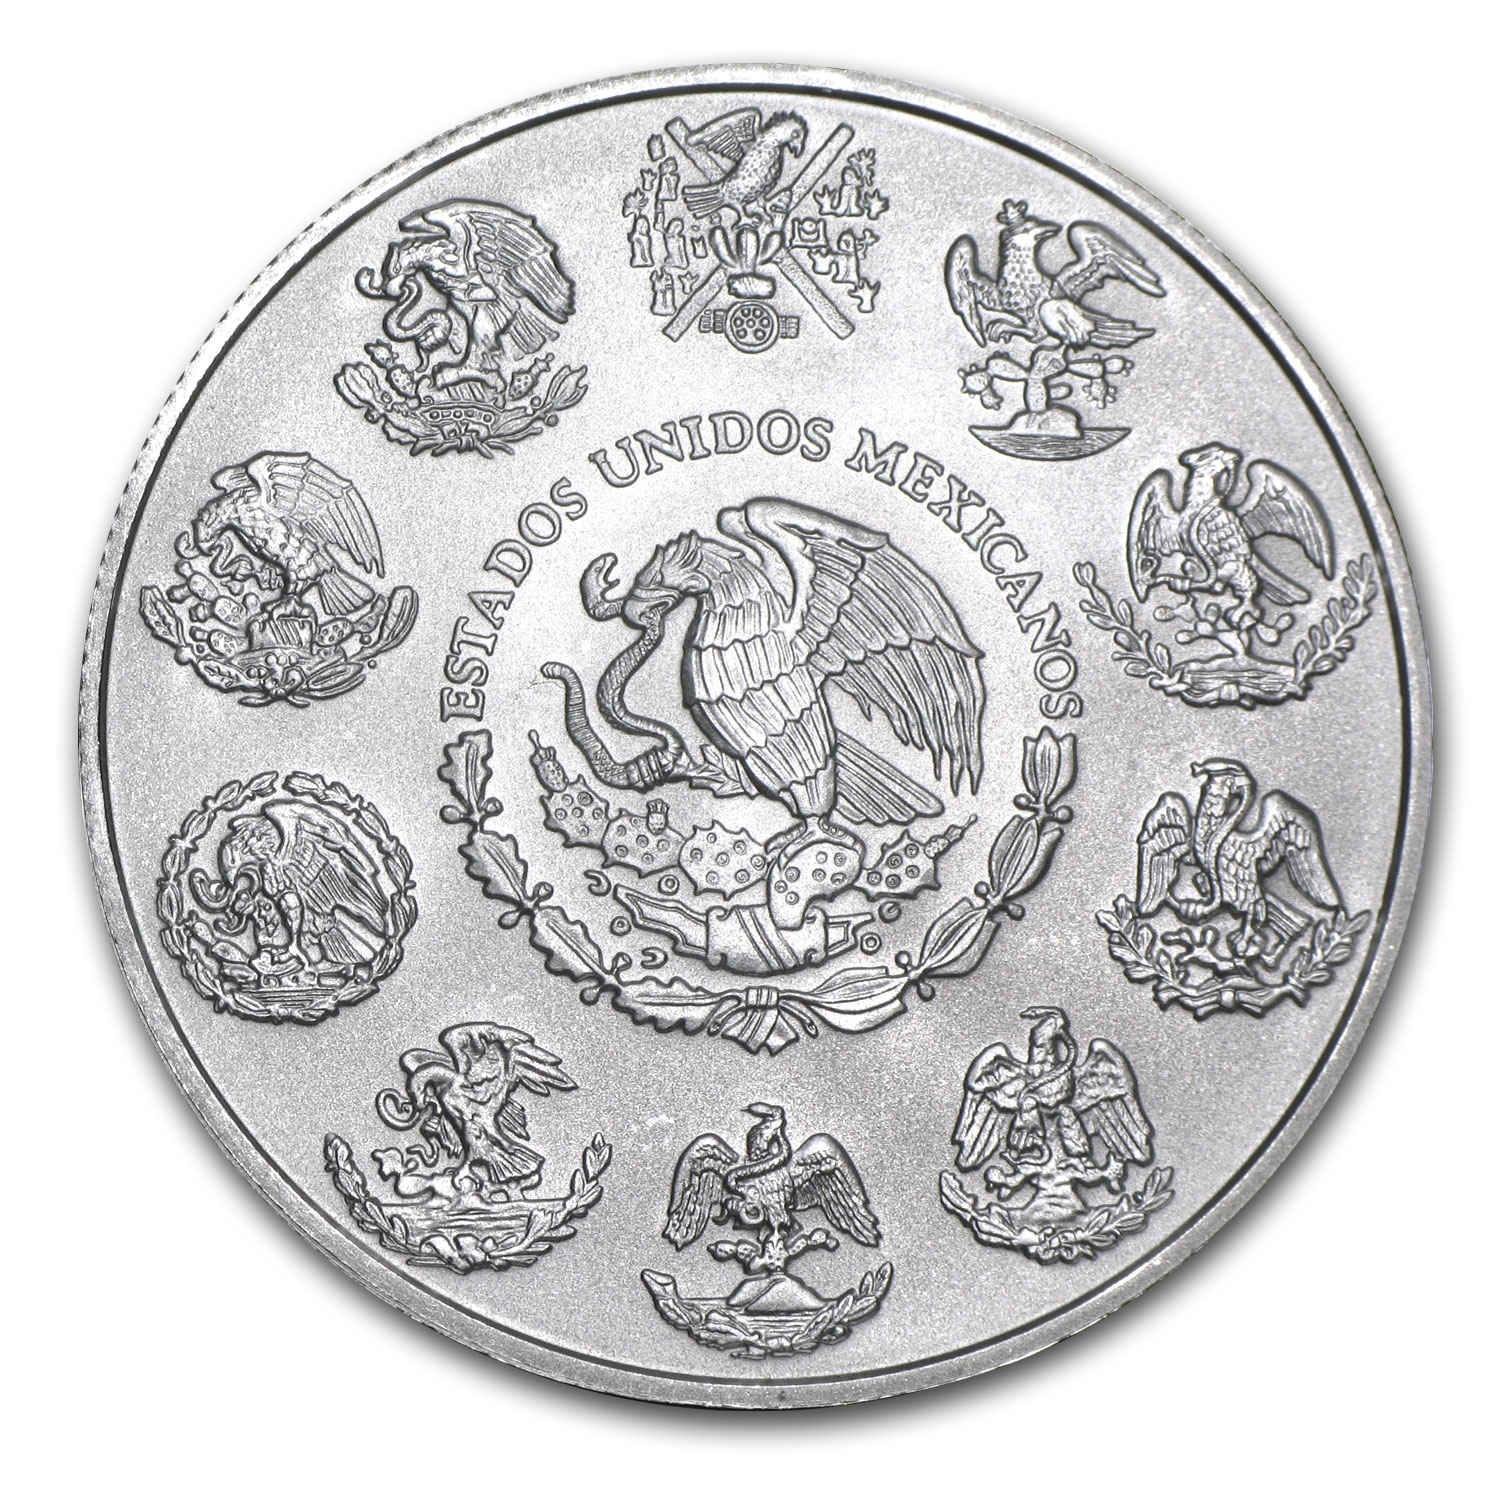 2014 1 oz Silver Mexican Libertad (Brilliant Uncirculated) (8/8)